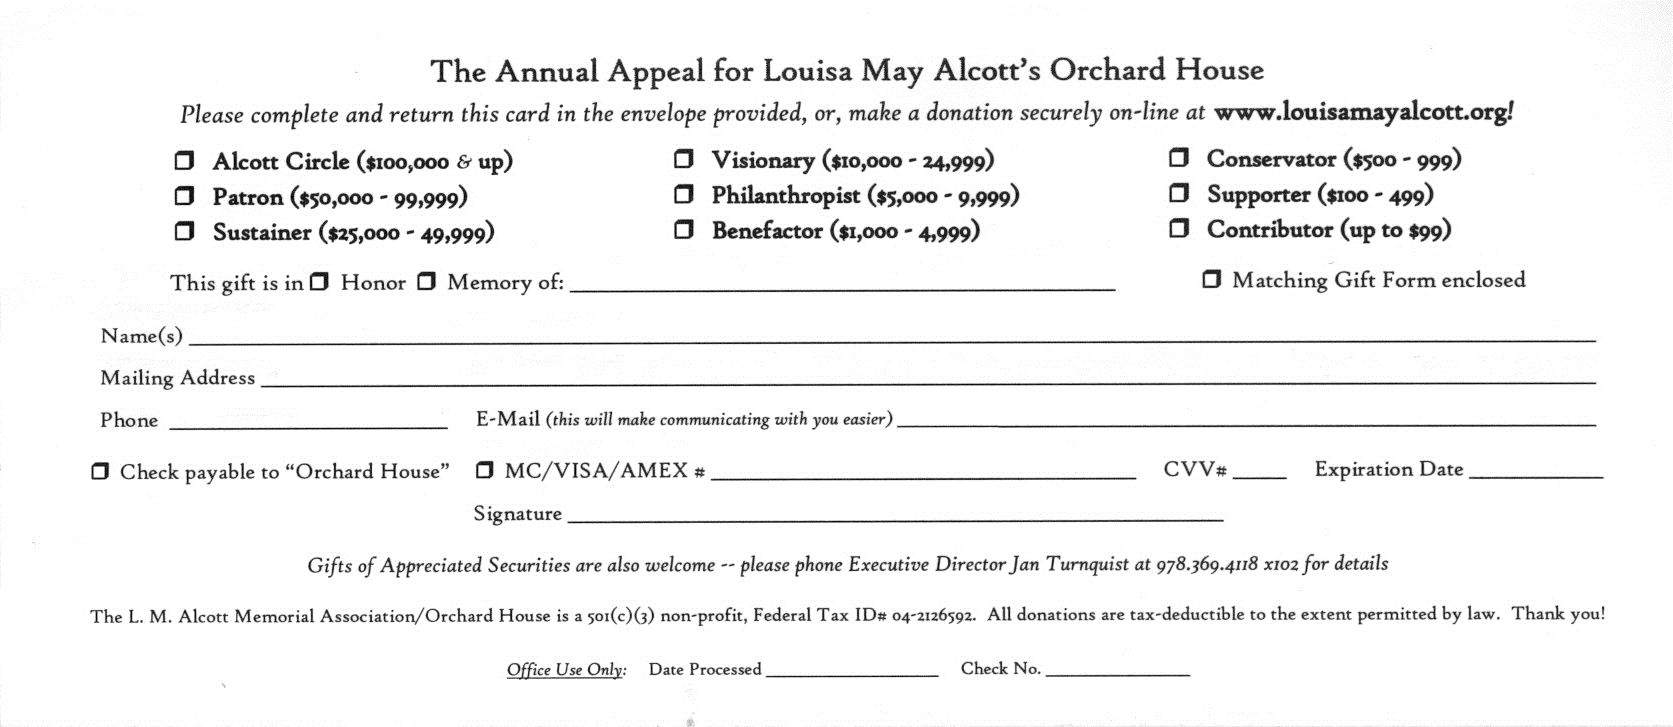 Louisa May Alcott's Orchard House Annual Appeal All Donations Received By  January 31, 2015 Will Still Count Toward The 2014 Appeal